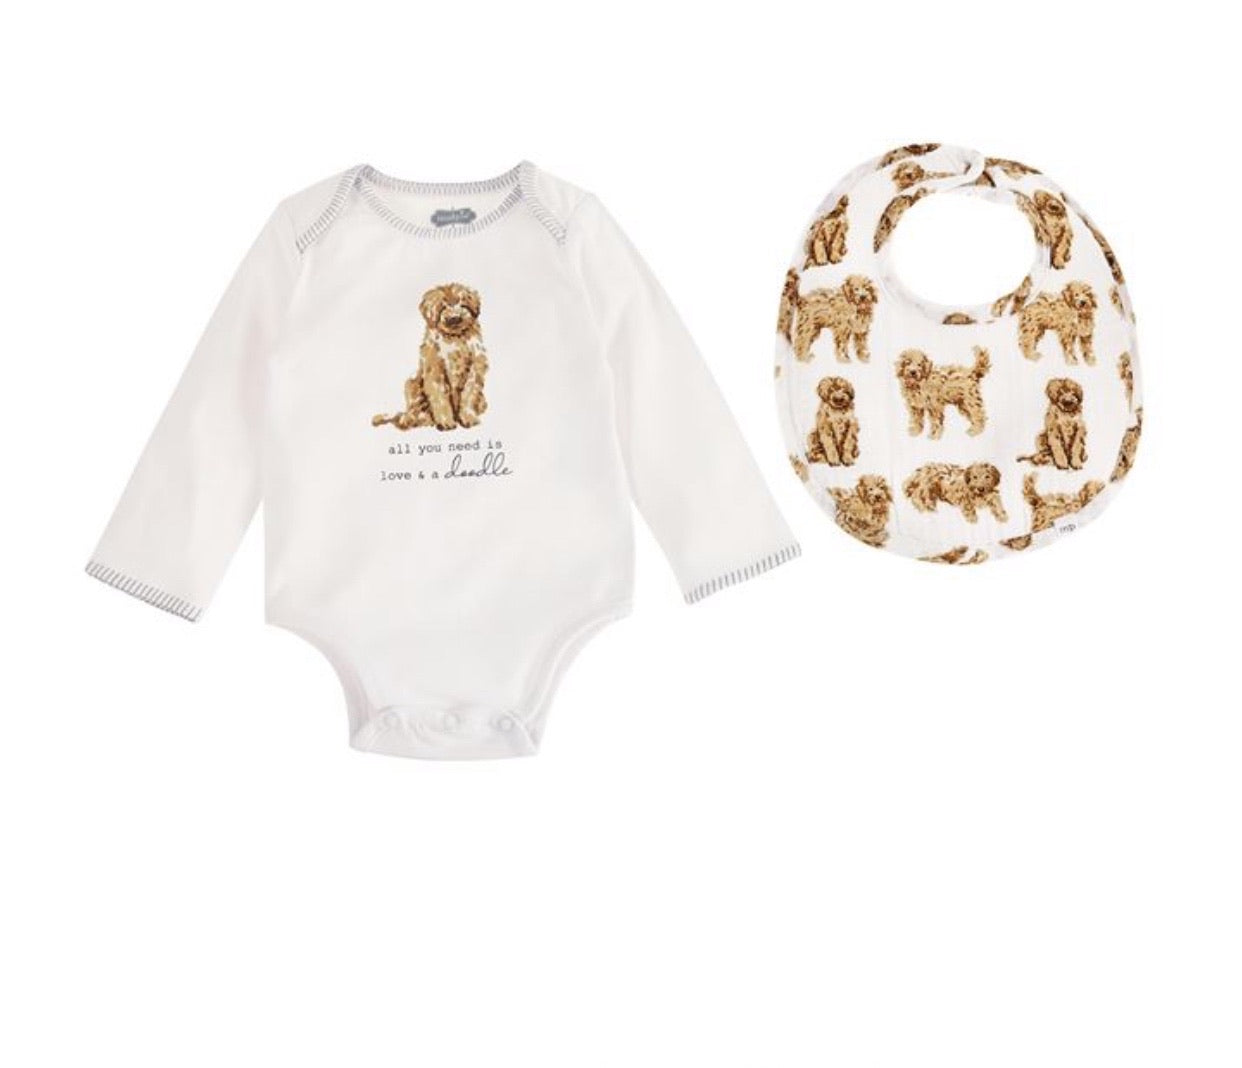 Baby Onesie and Bib Set